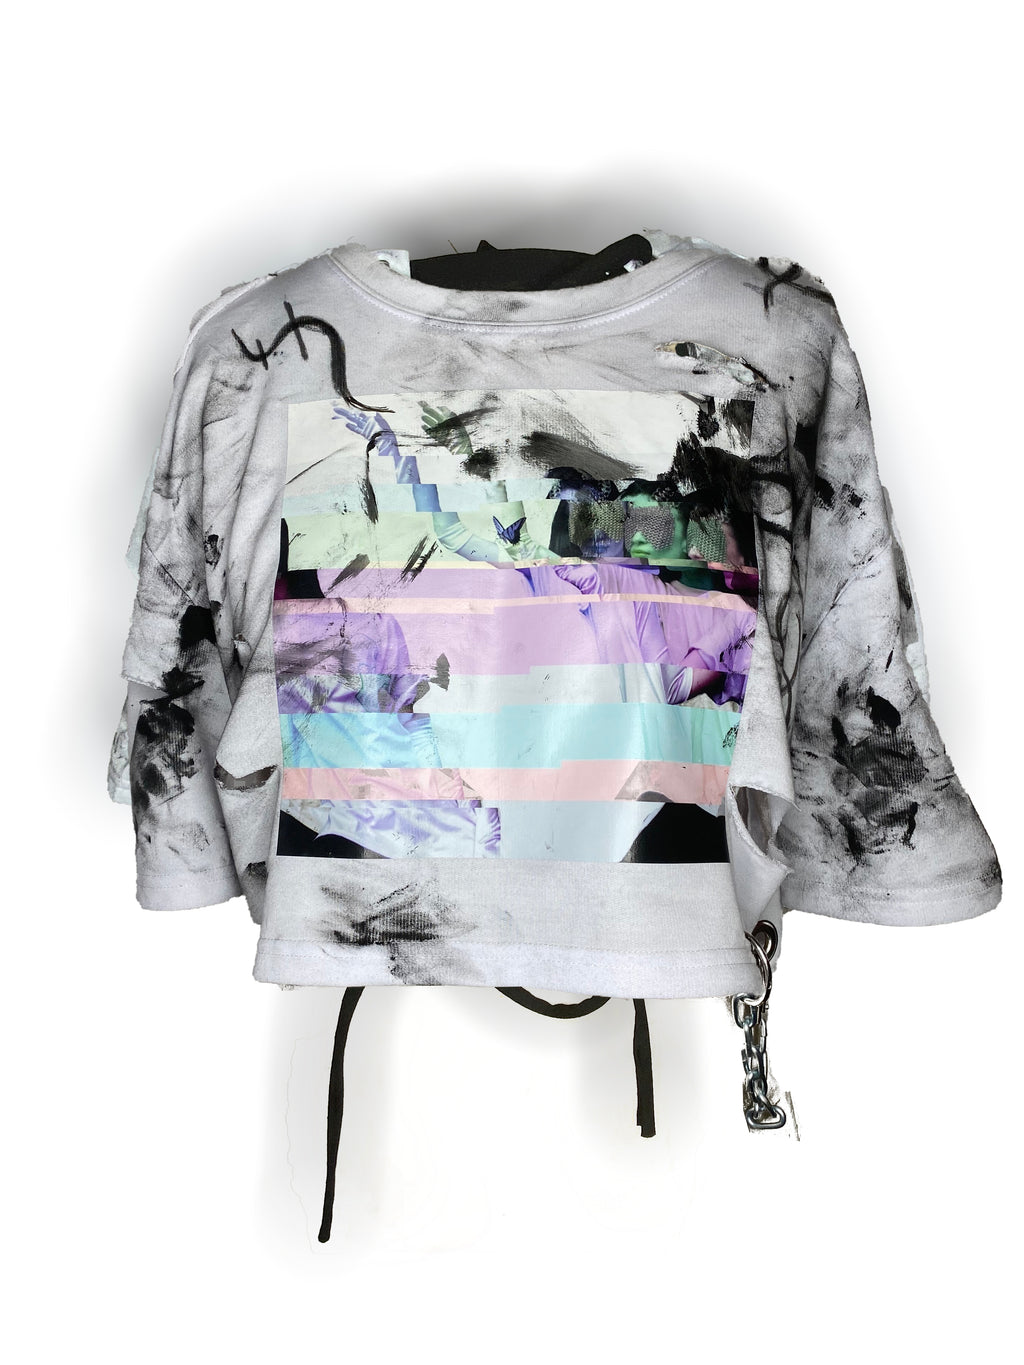 Ripped and Sliced Glitch Tee